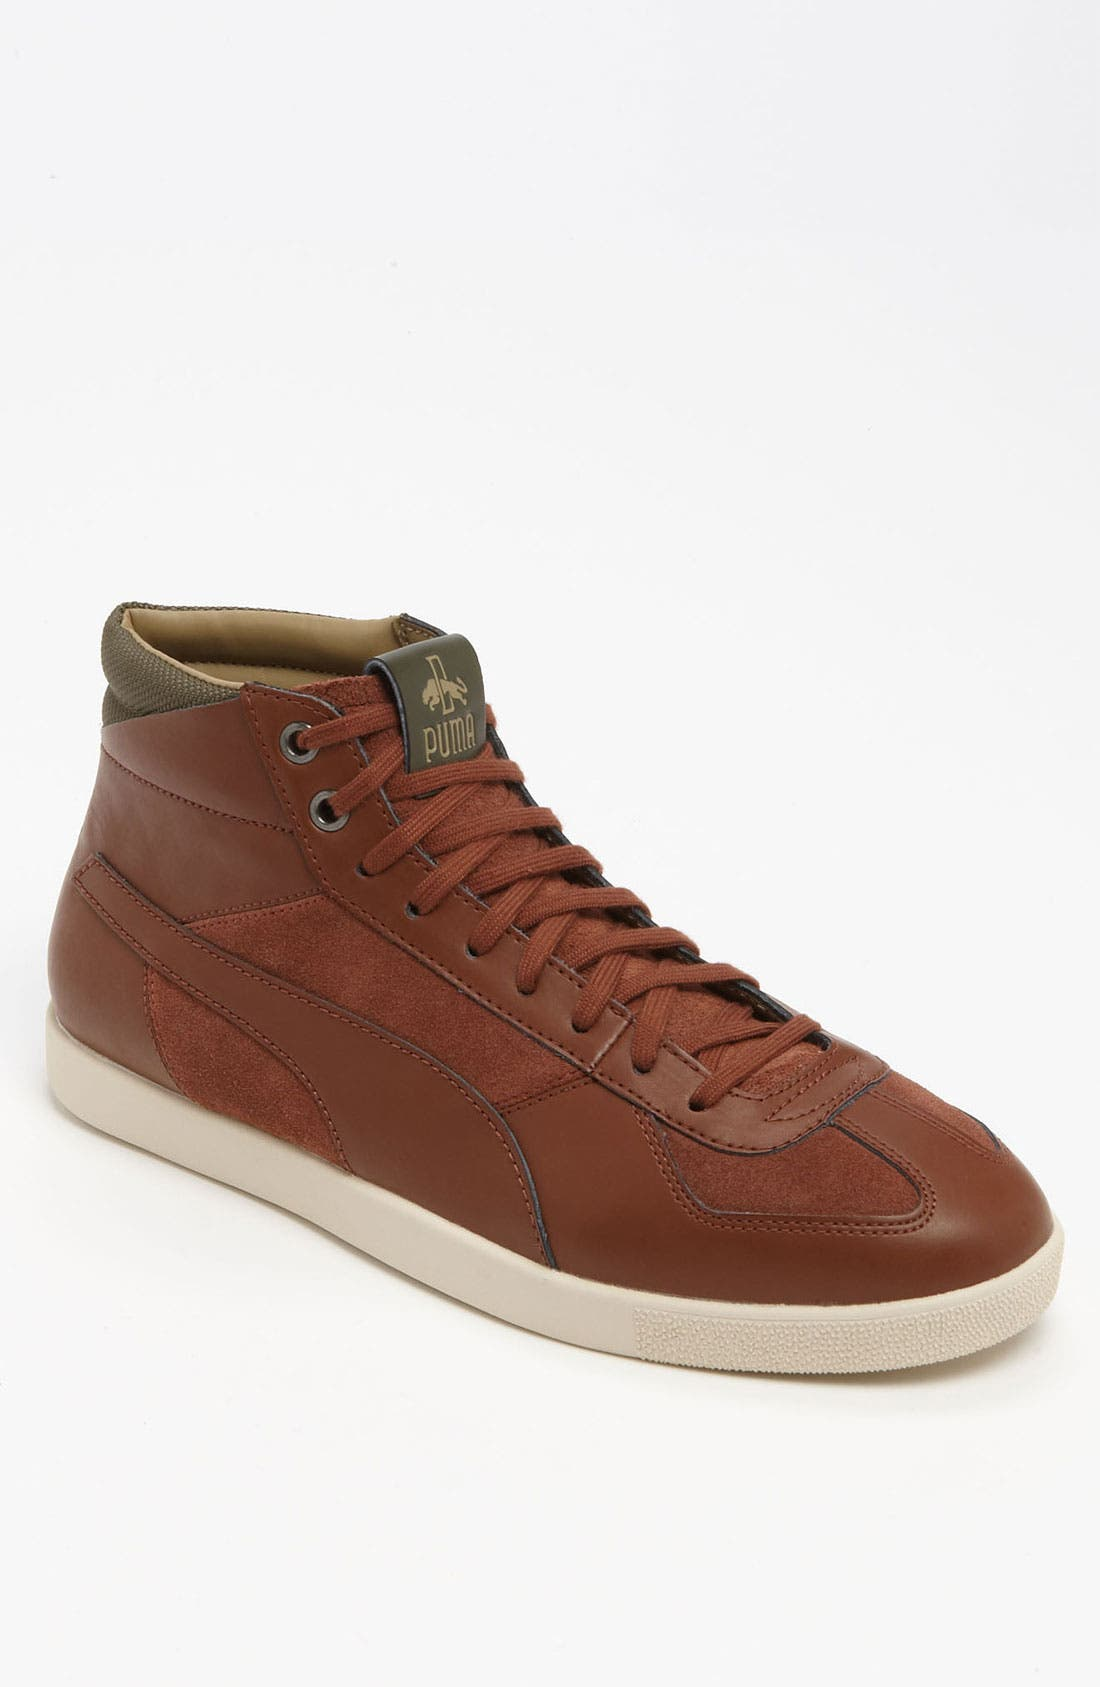 Alternate Image 1 Selected - PUMA 'Dassler - Ansbach Mid' Sneaker